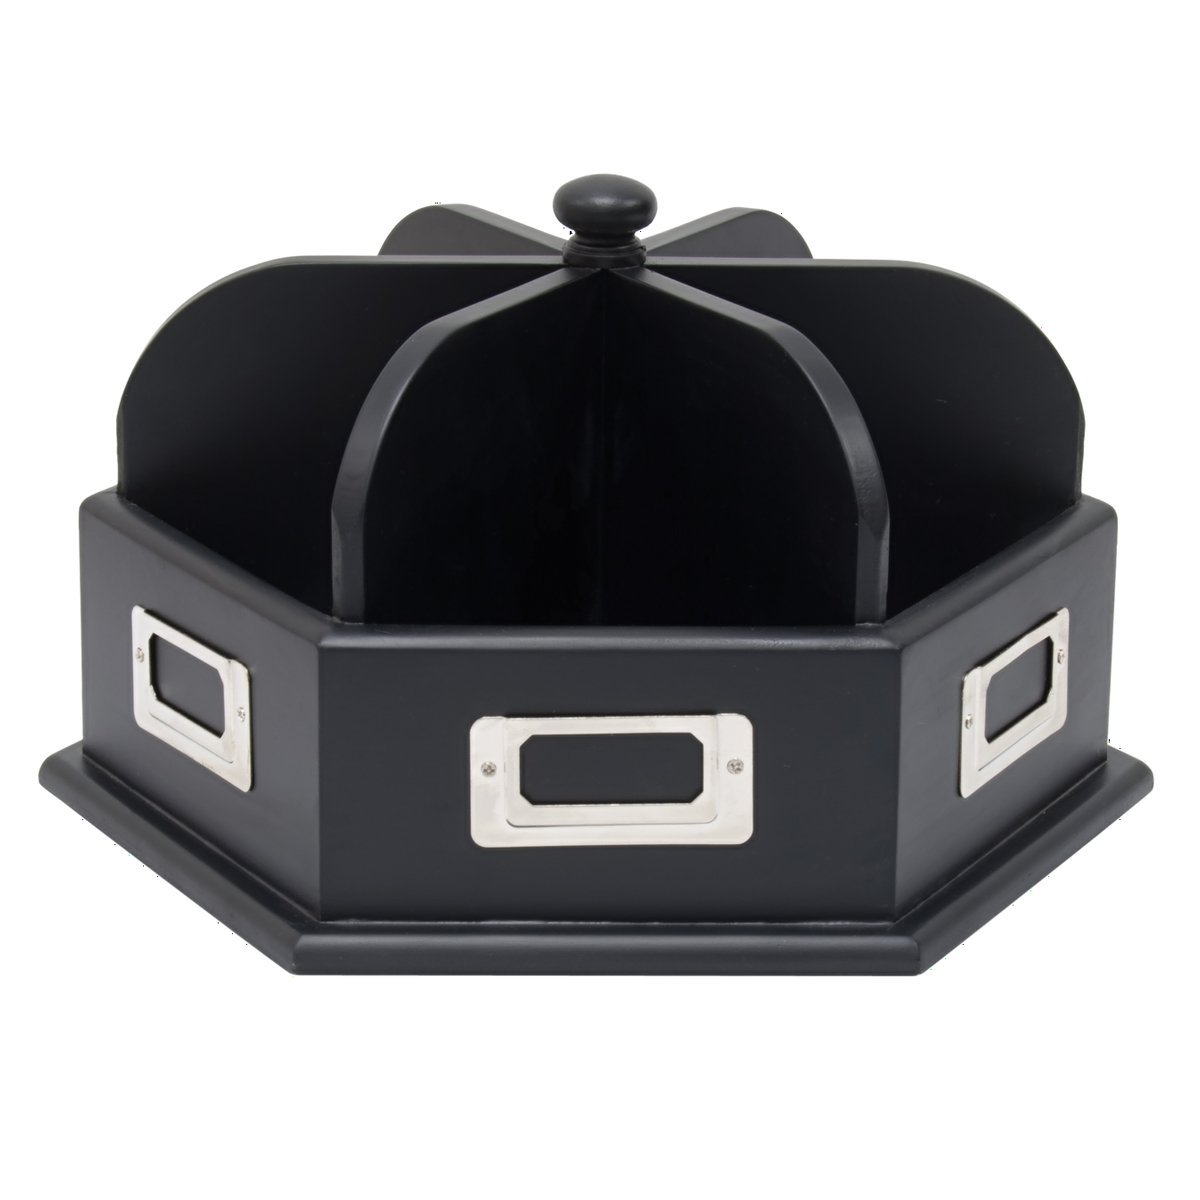 Offex Home Office Wood Desk Carousel Black